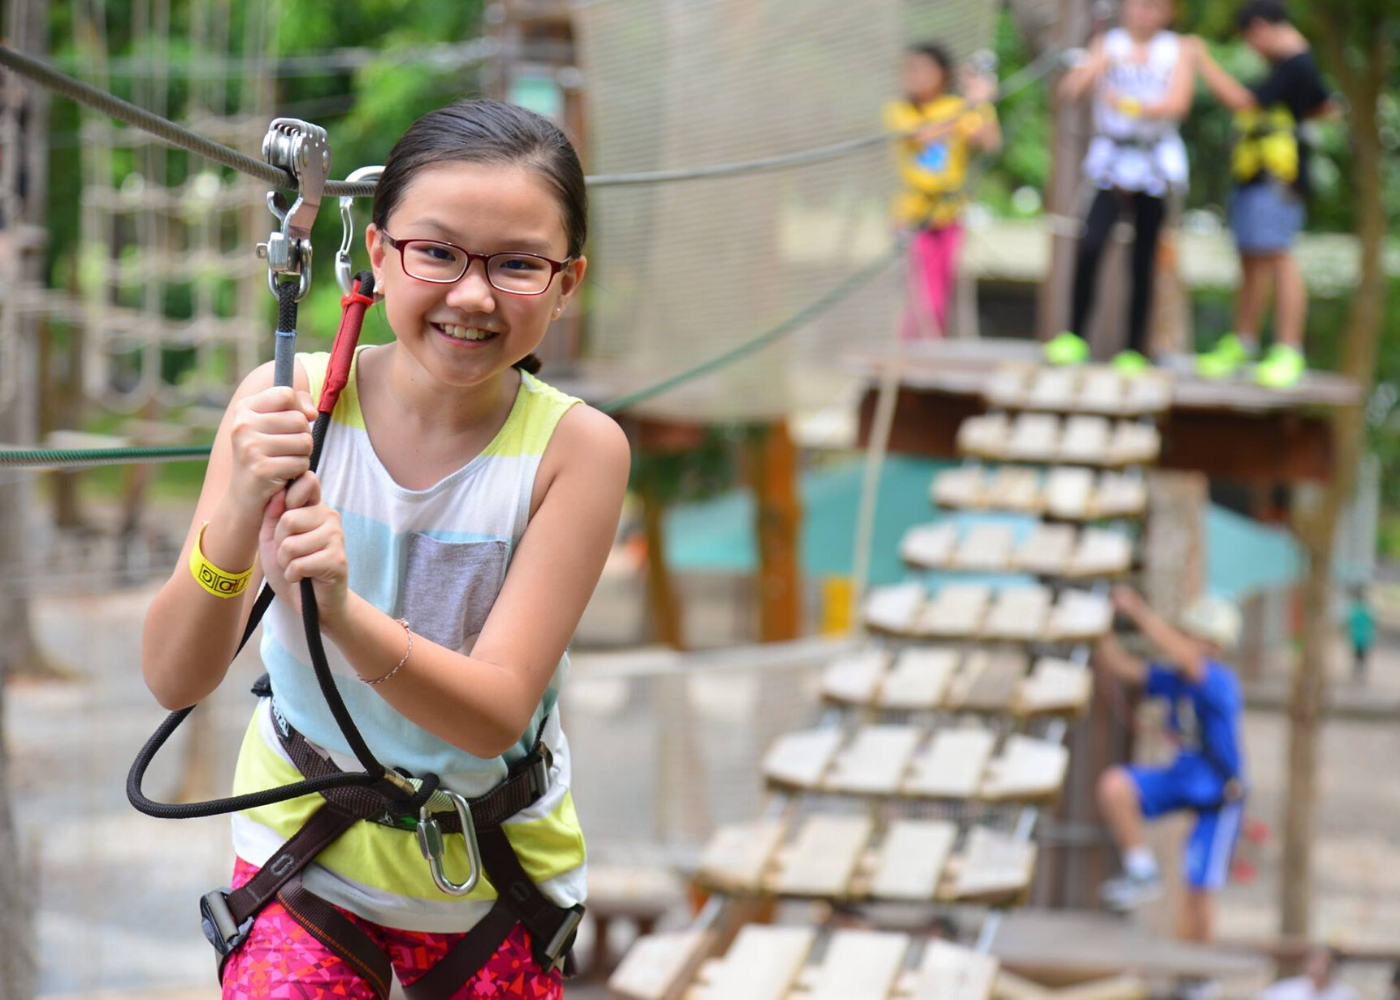 Adventure sports for kids in Singapore